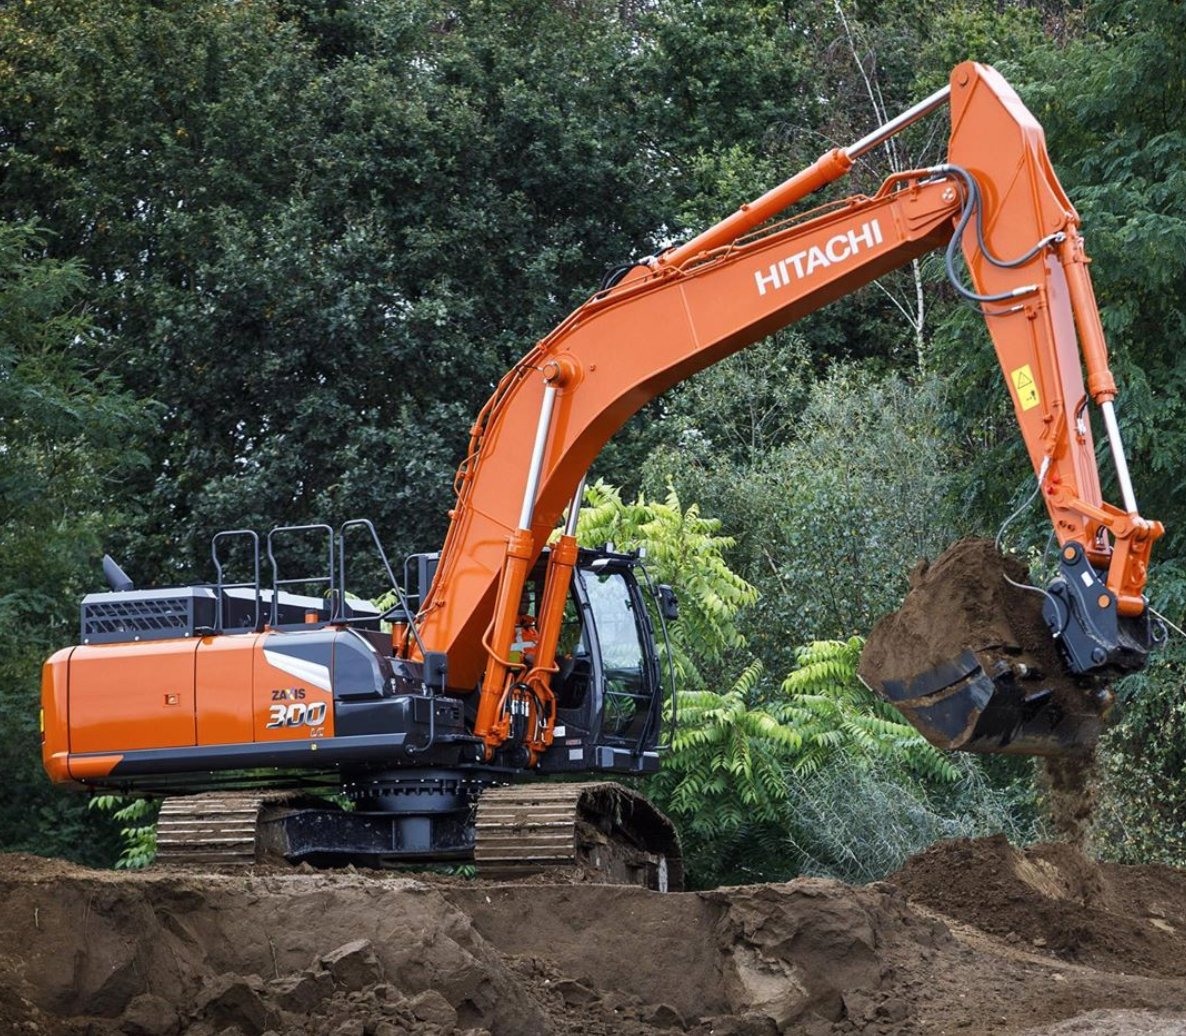 Check out this new Zaxis-7 medium #excavator. Have you seen any on a job site or on the road for delivery yet?  [@massuccot] https://t.co/Ov0JORLFD2